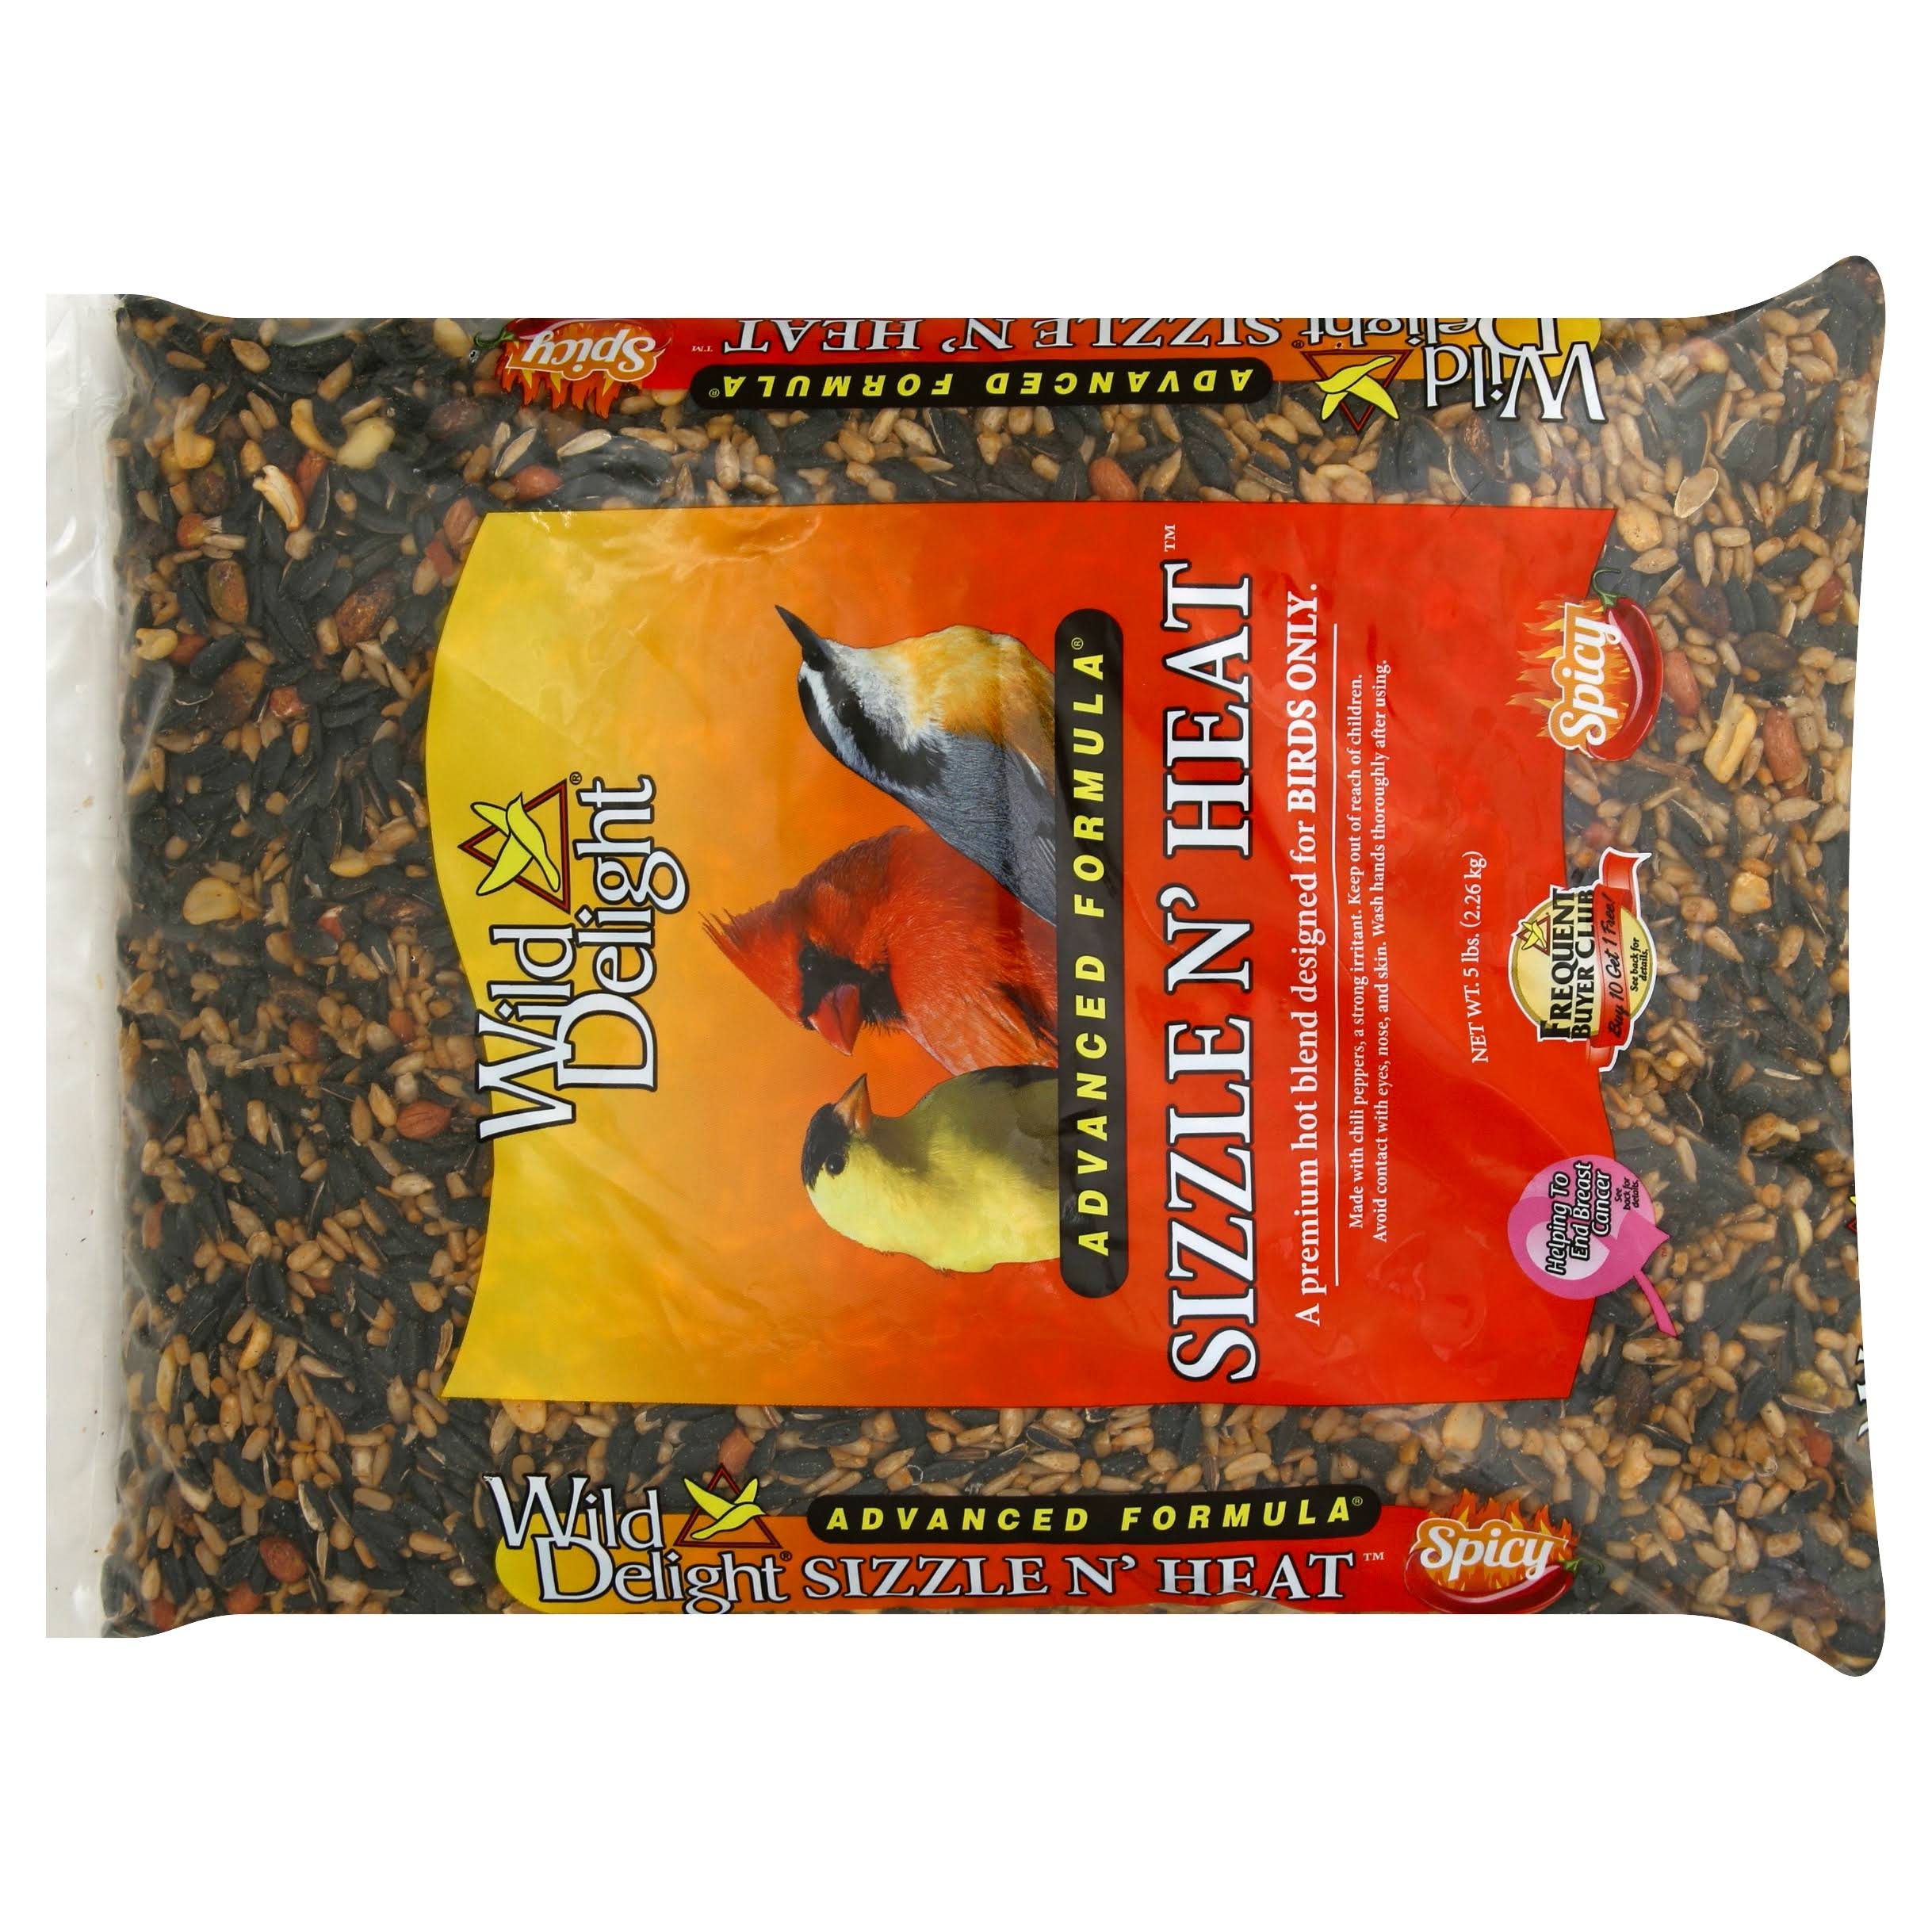 Wild Delight Sizzle N' Heat Bird Food - 5lbs